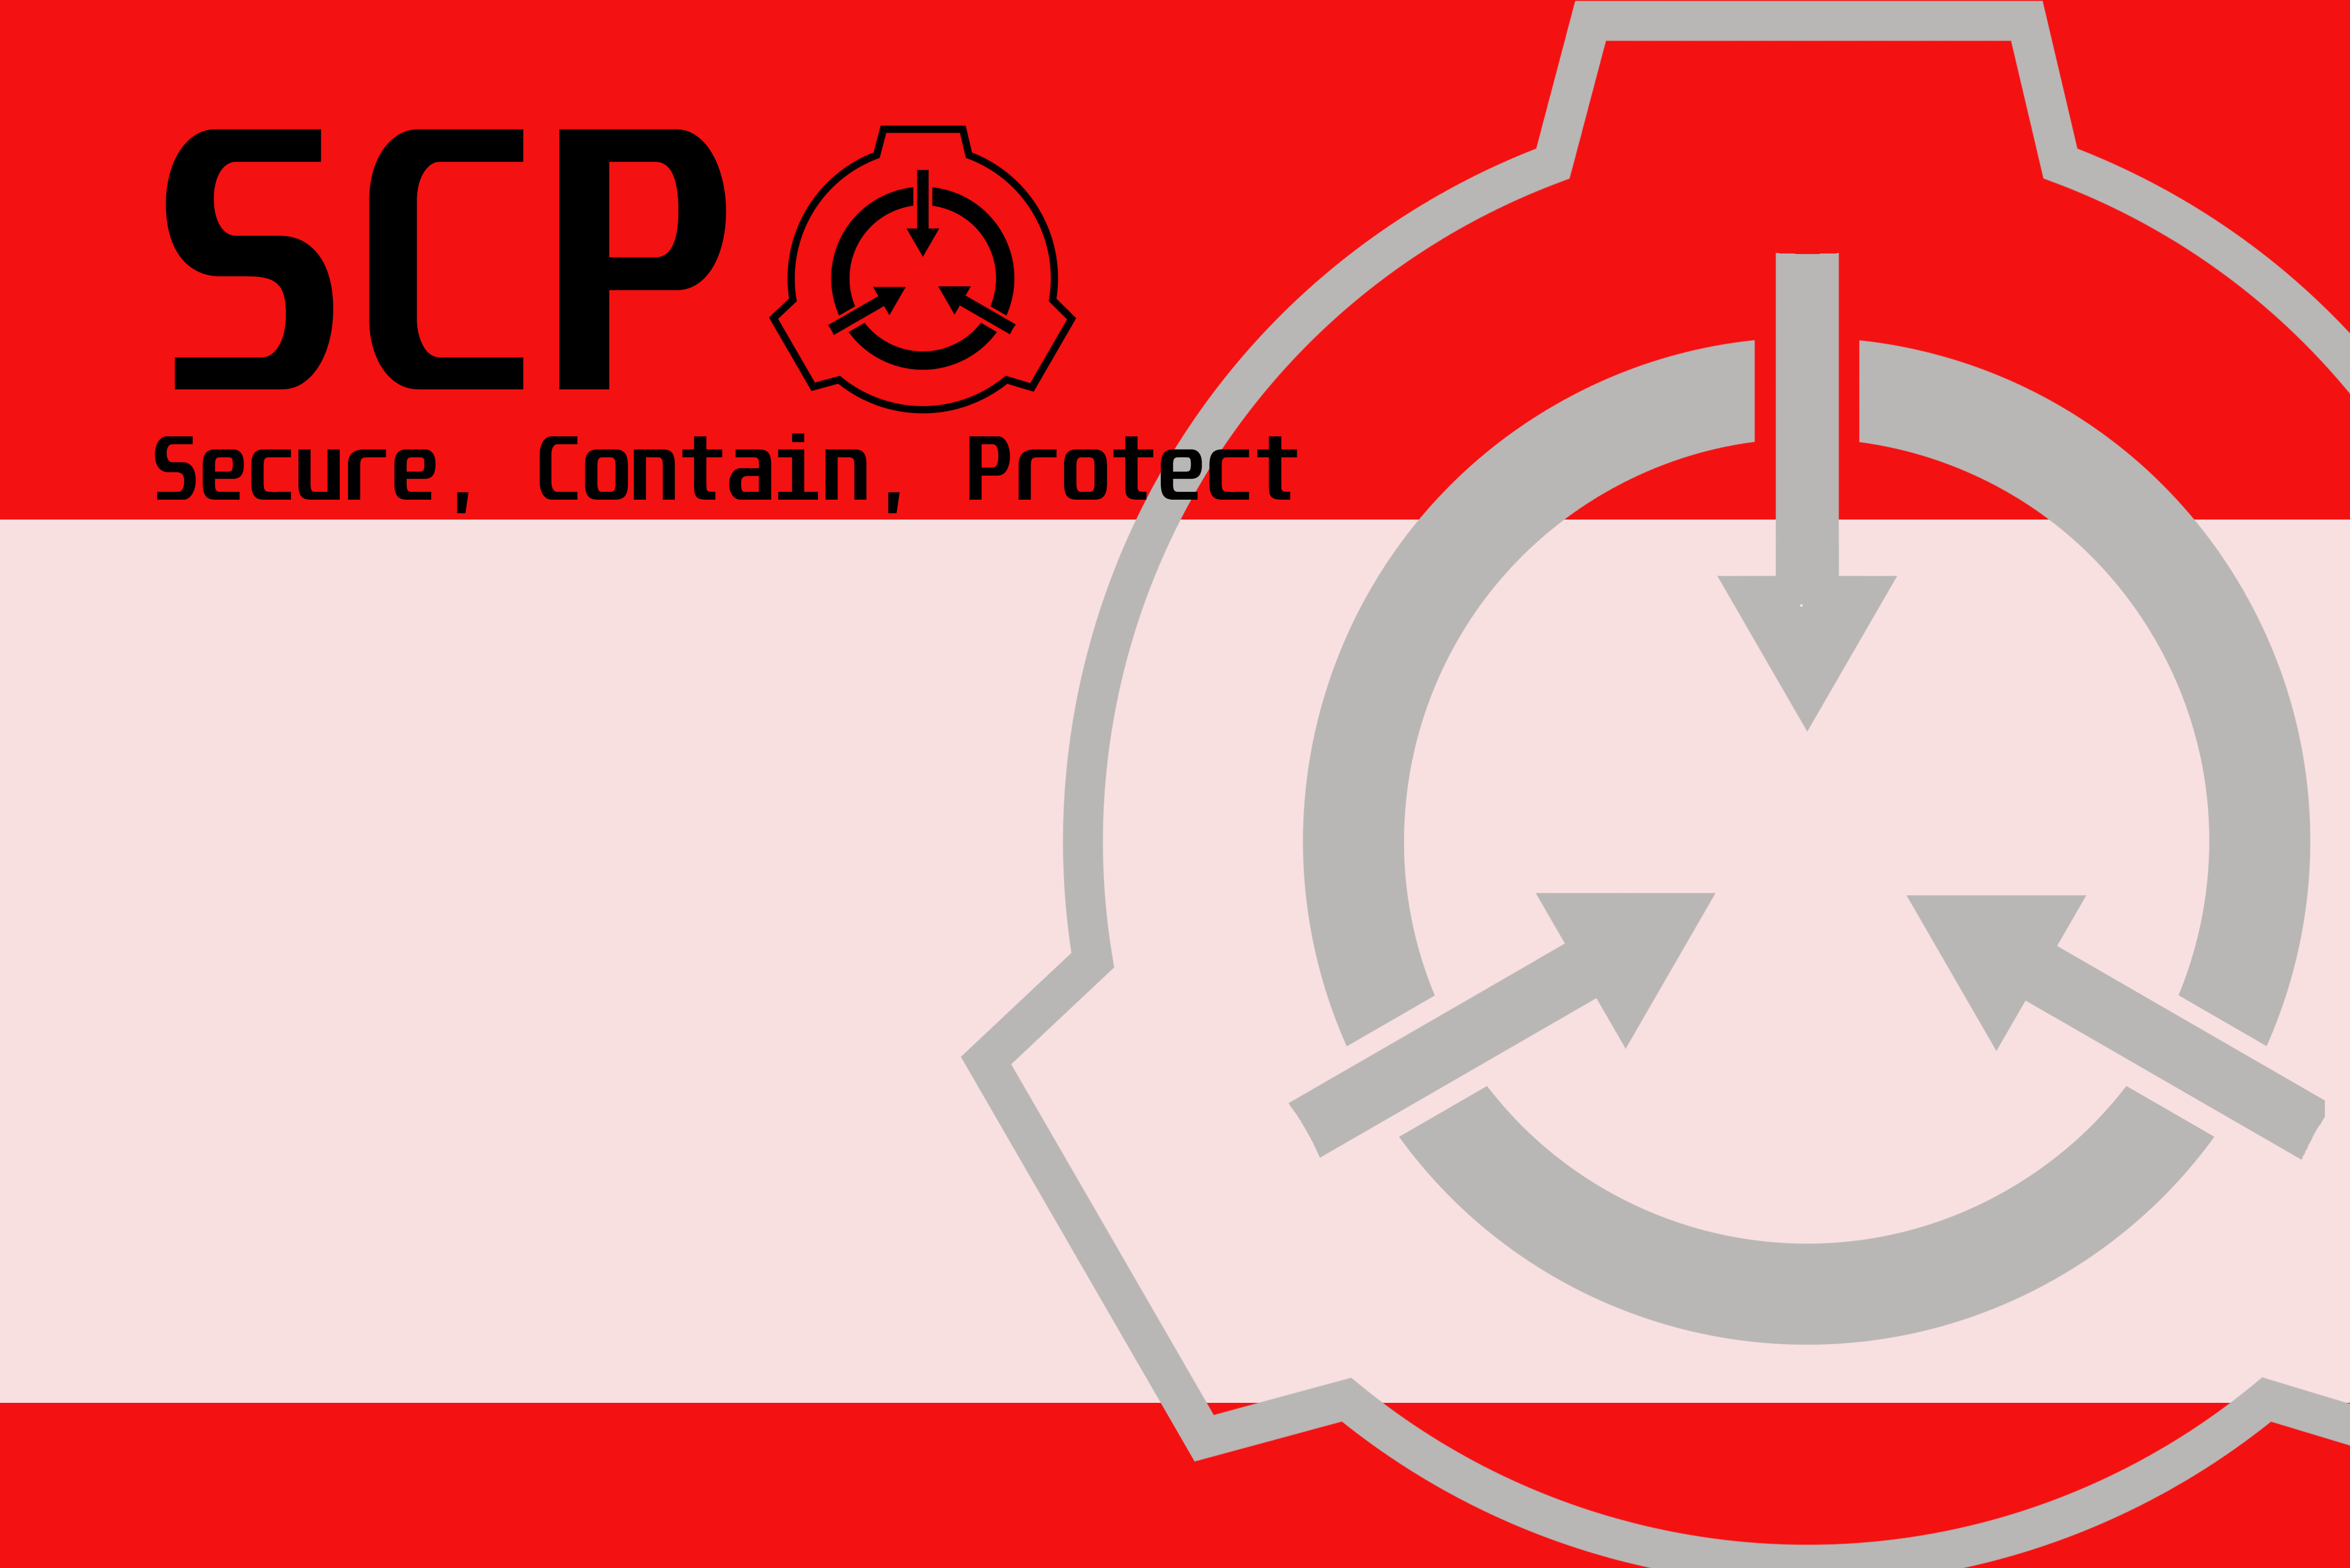 SCP-Ccard-Red-01.png